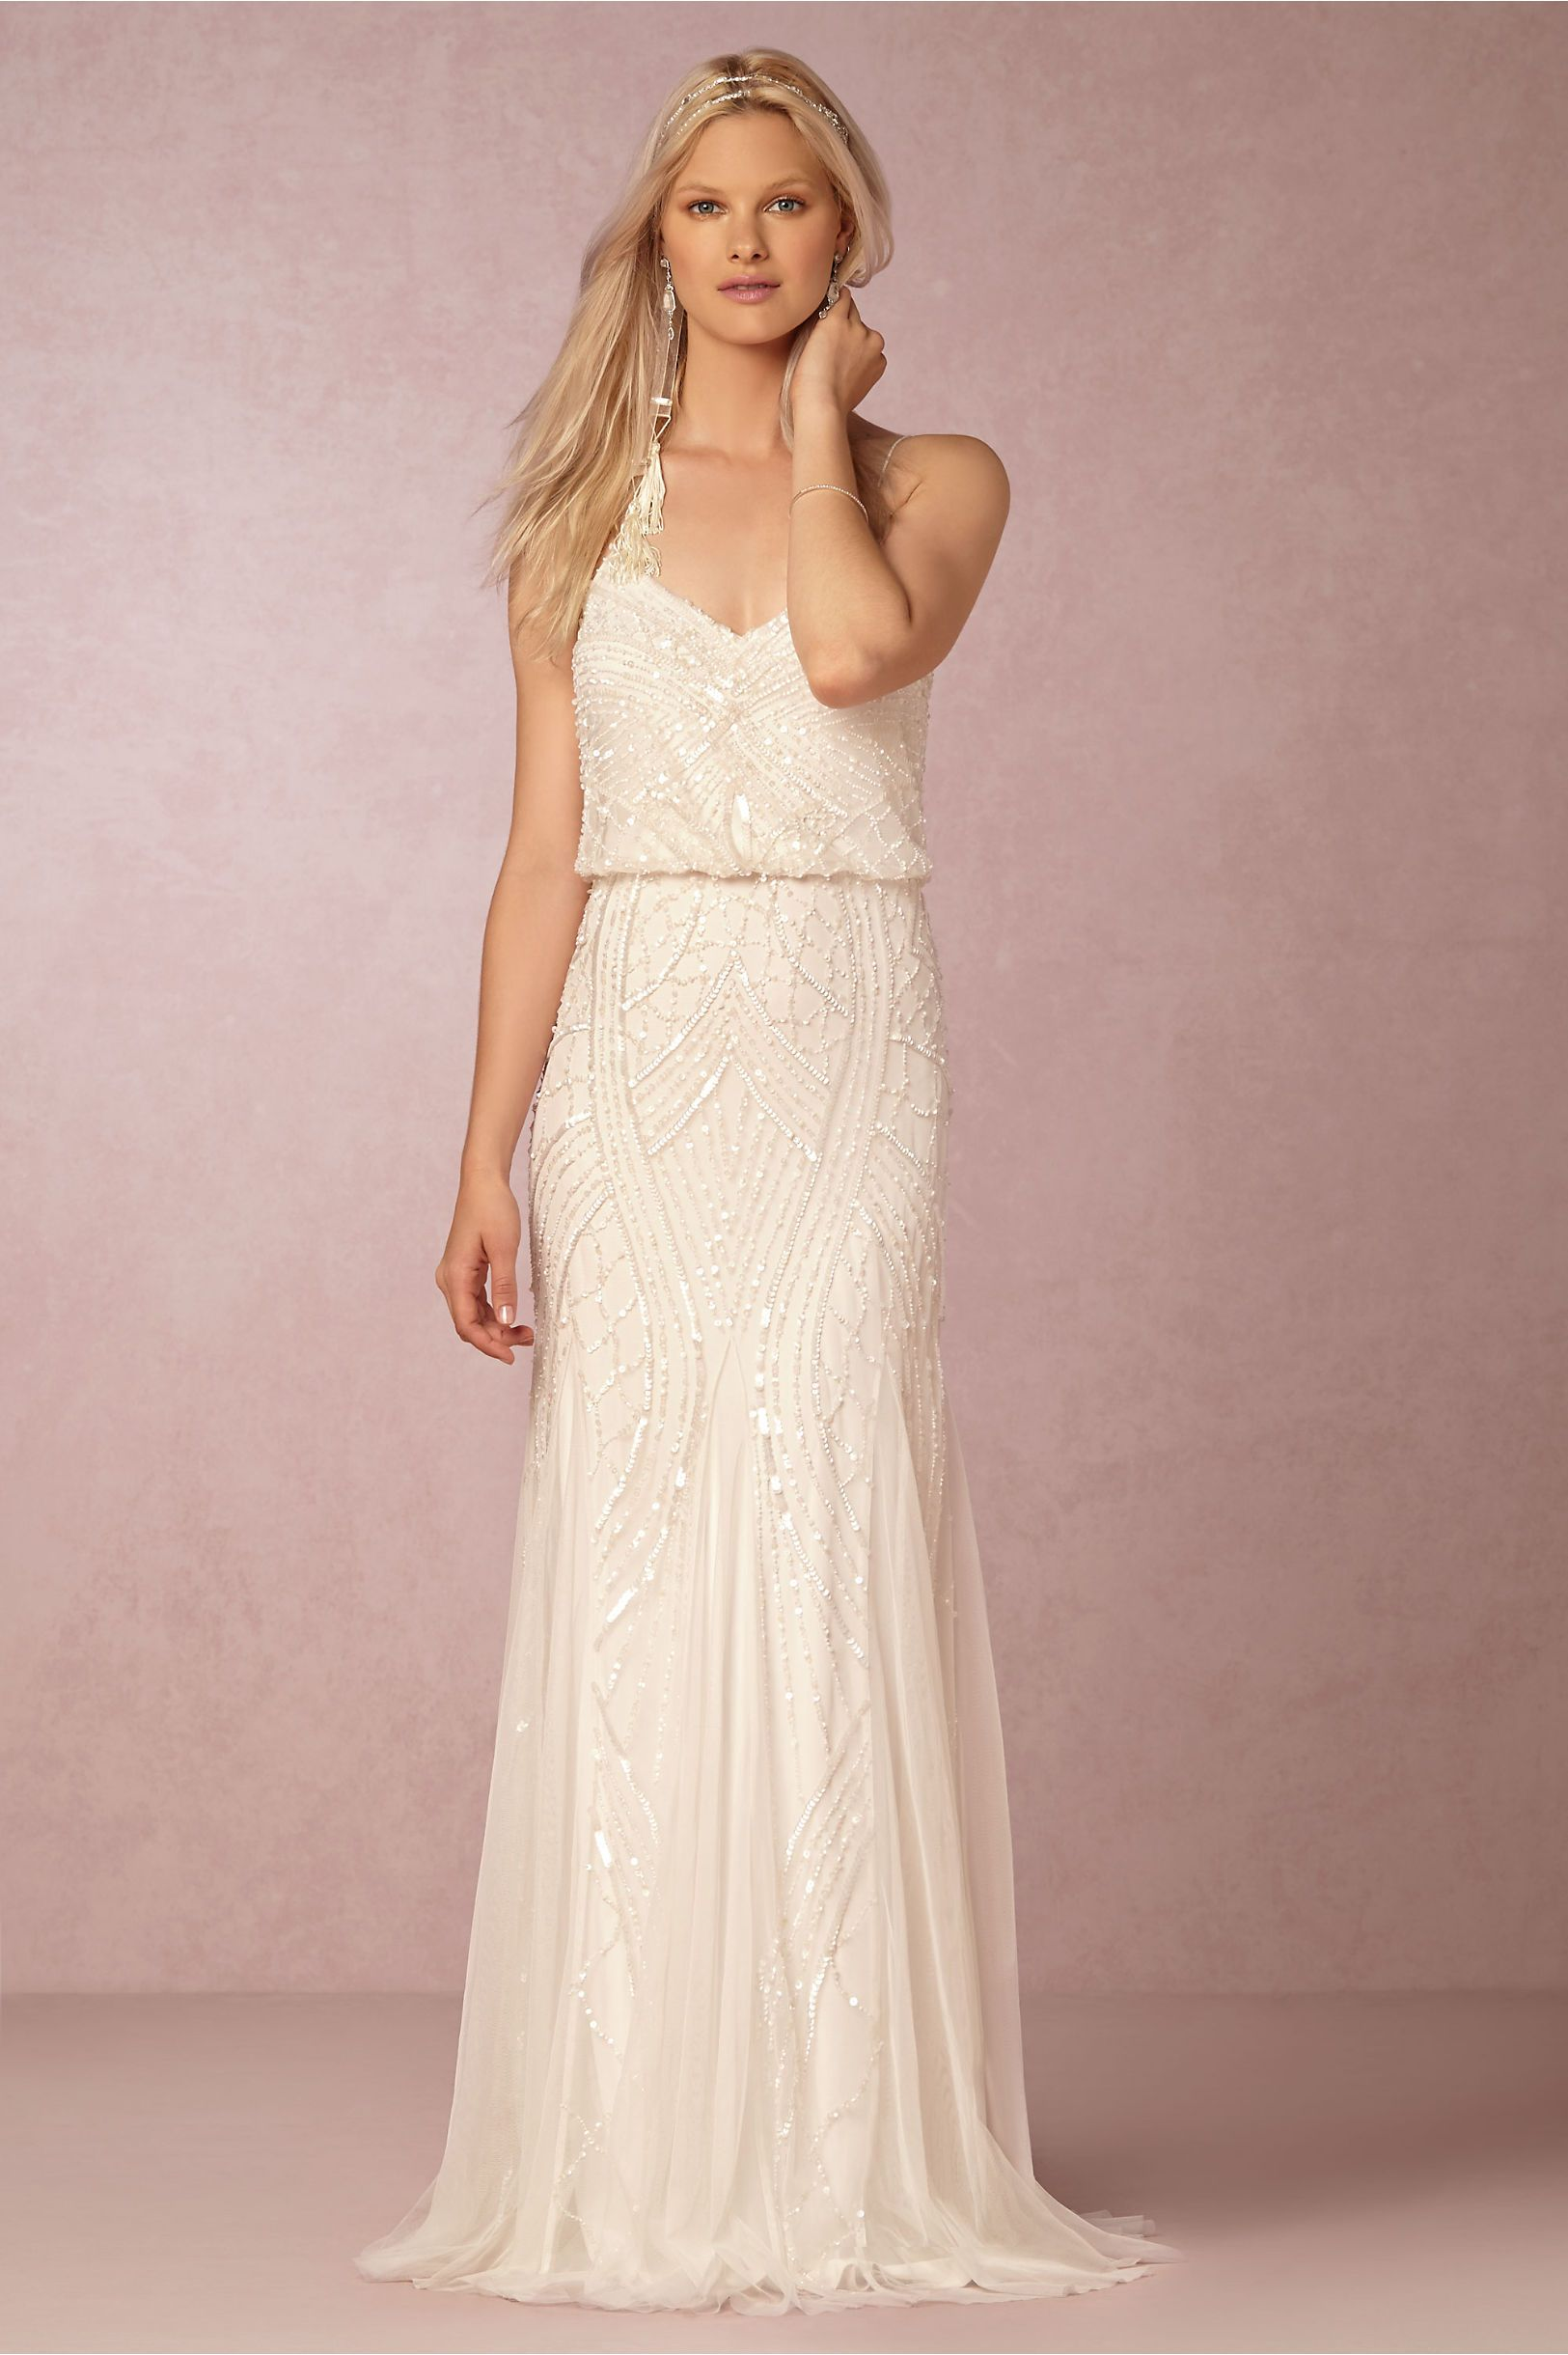 Pinterest flapper wedding dresses 1920s style and adrianna papell - Affordable Wedding Dresses